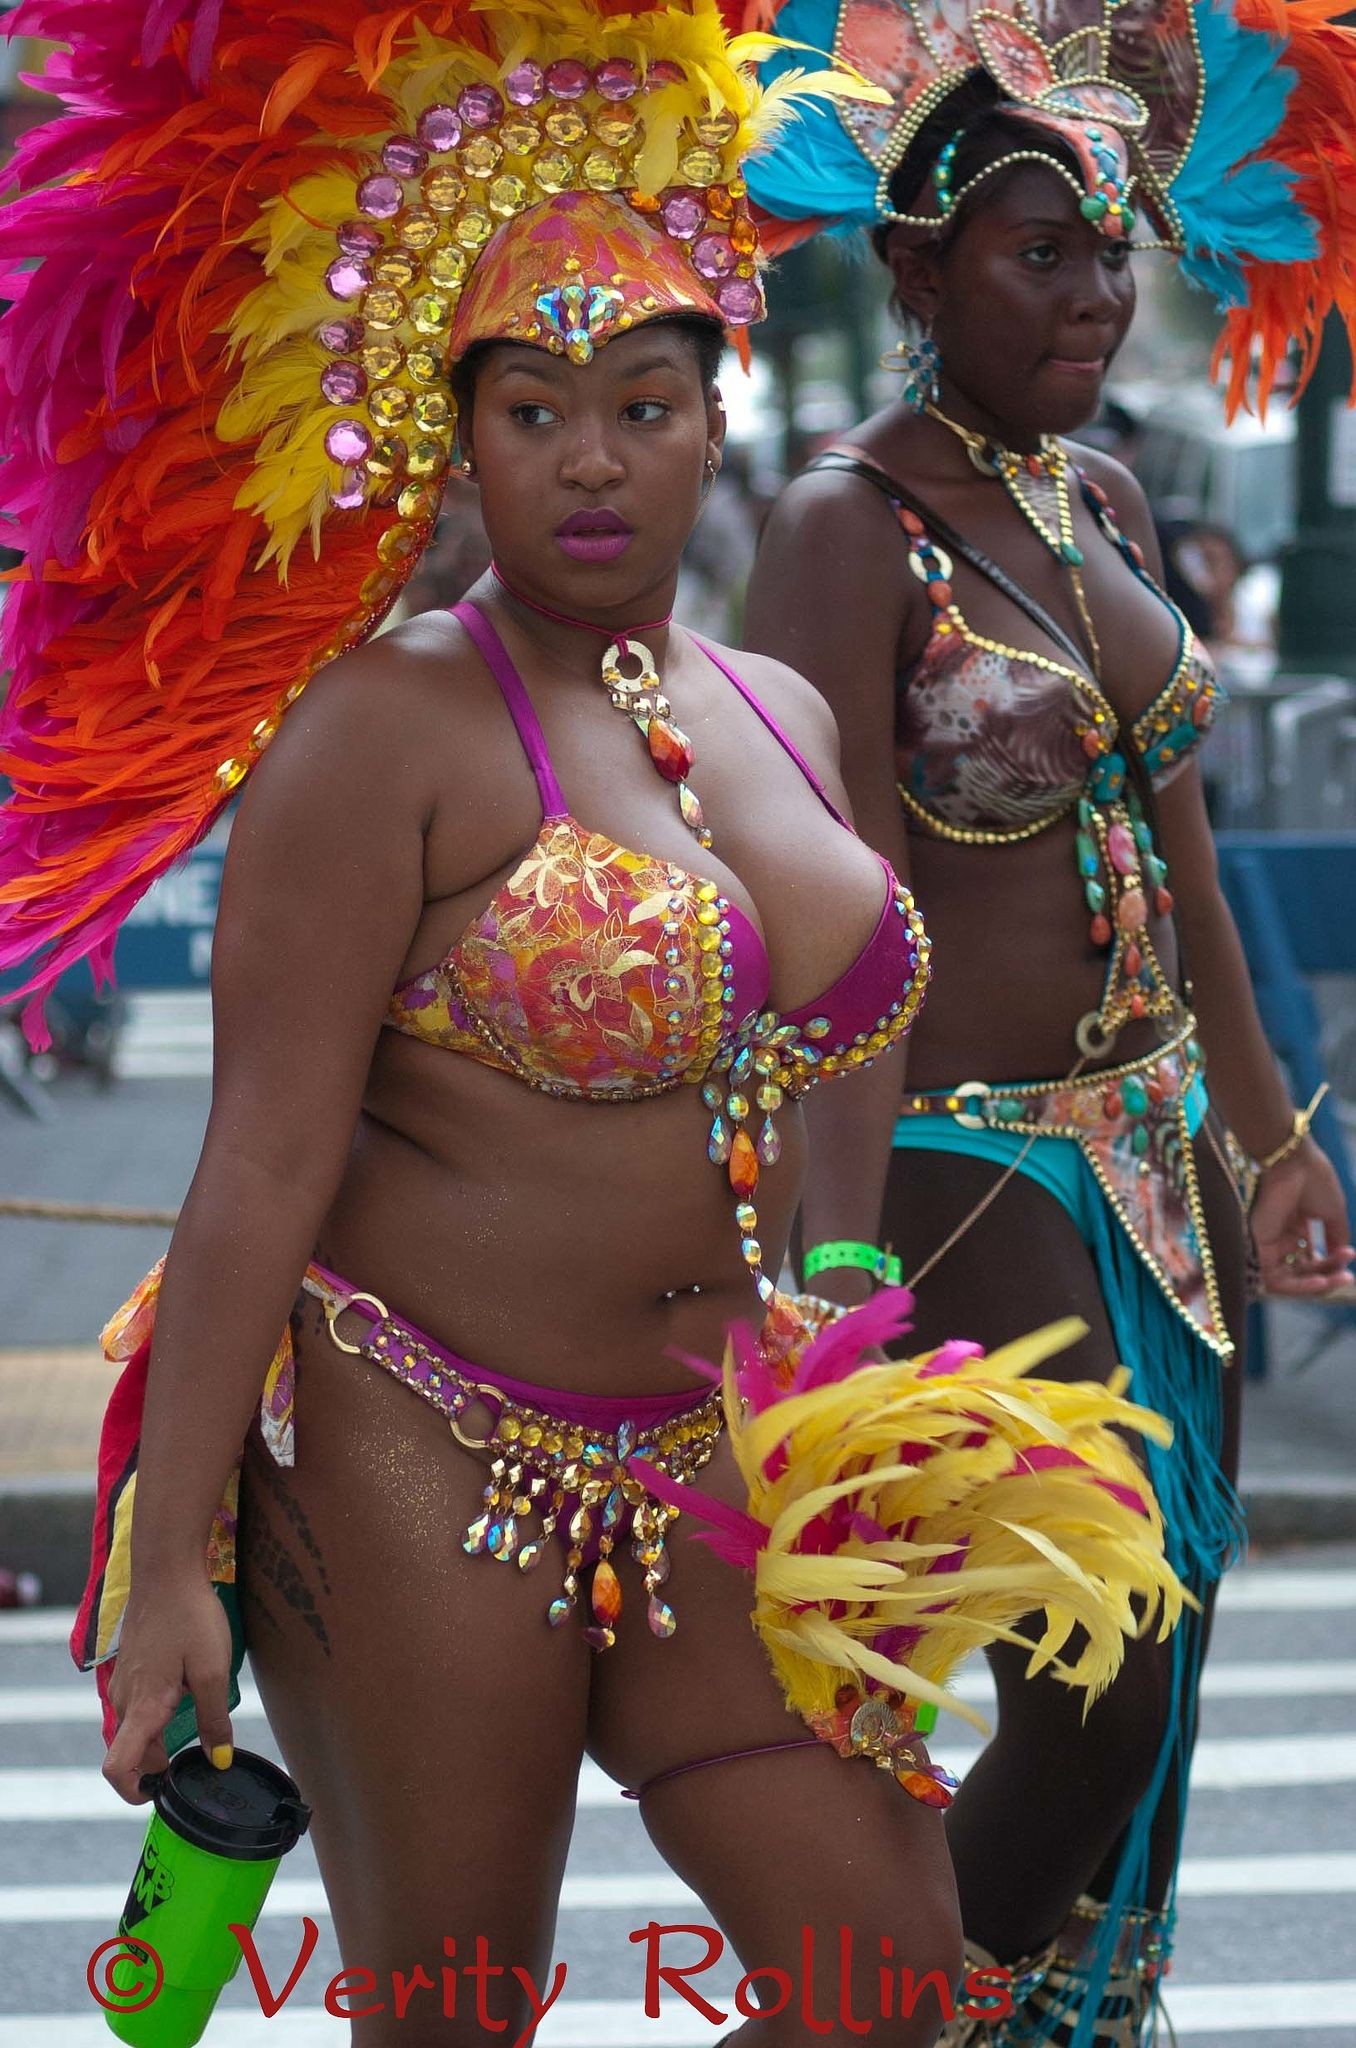 West indian carnival sex are not